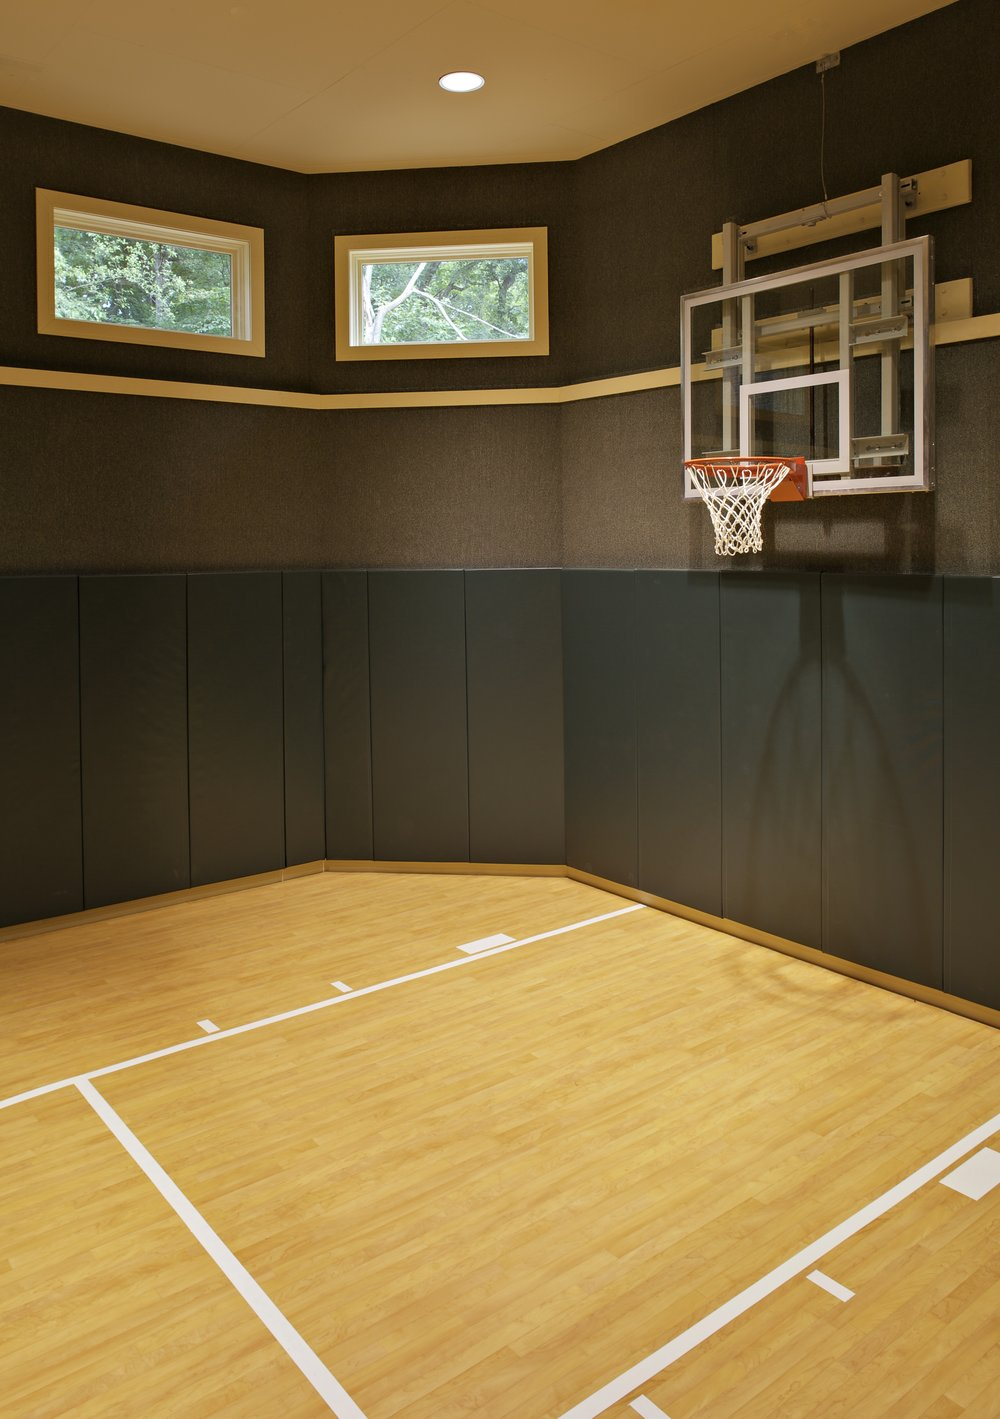 Basketball court Client copy.jpg